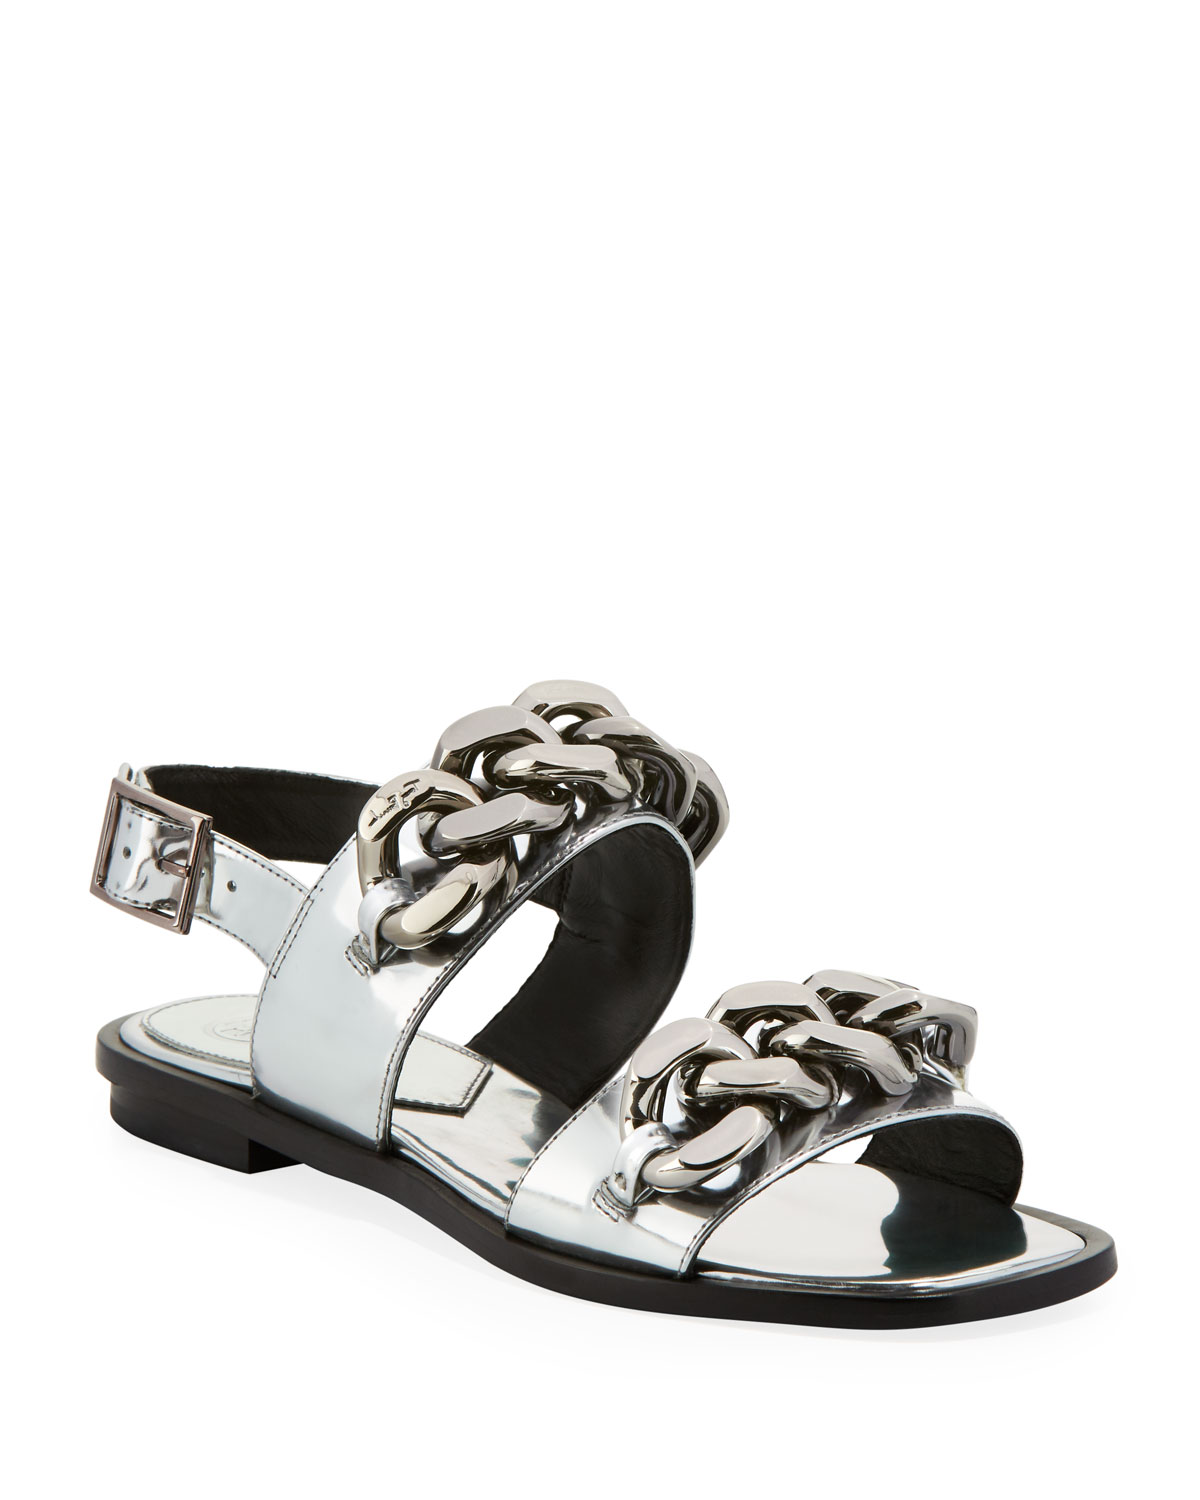 3f01e6fbdd9 Tory Burch Adrien Flat Chain-Embellished Sandals